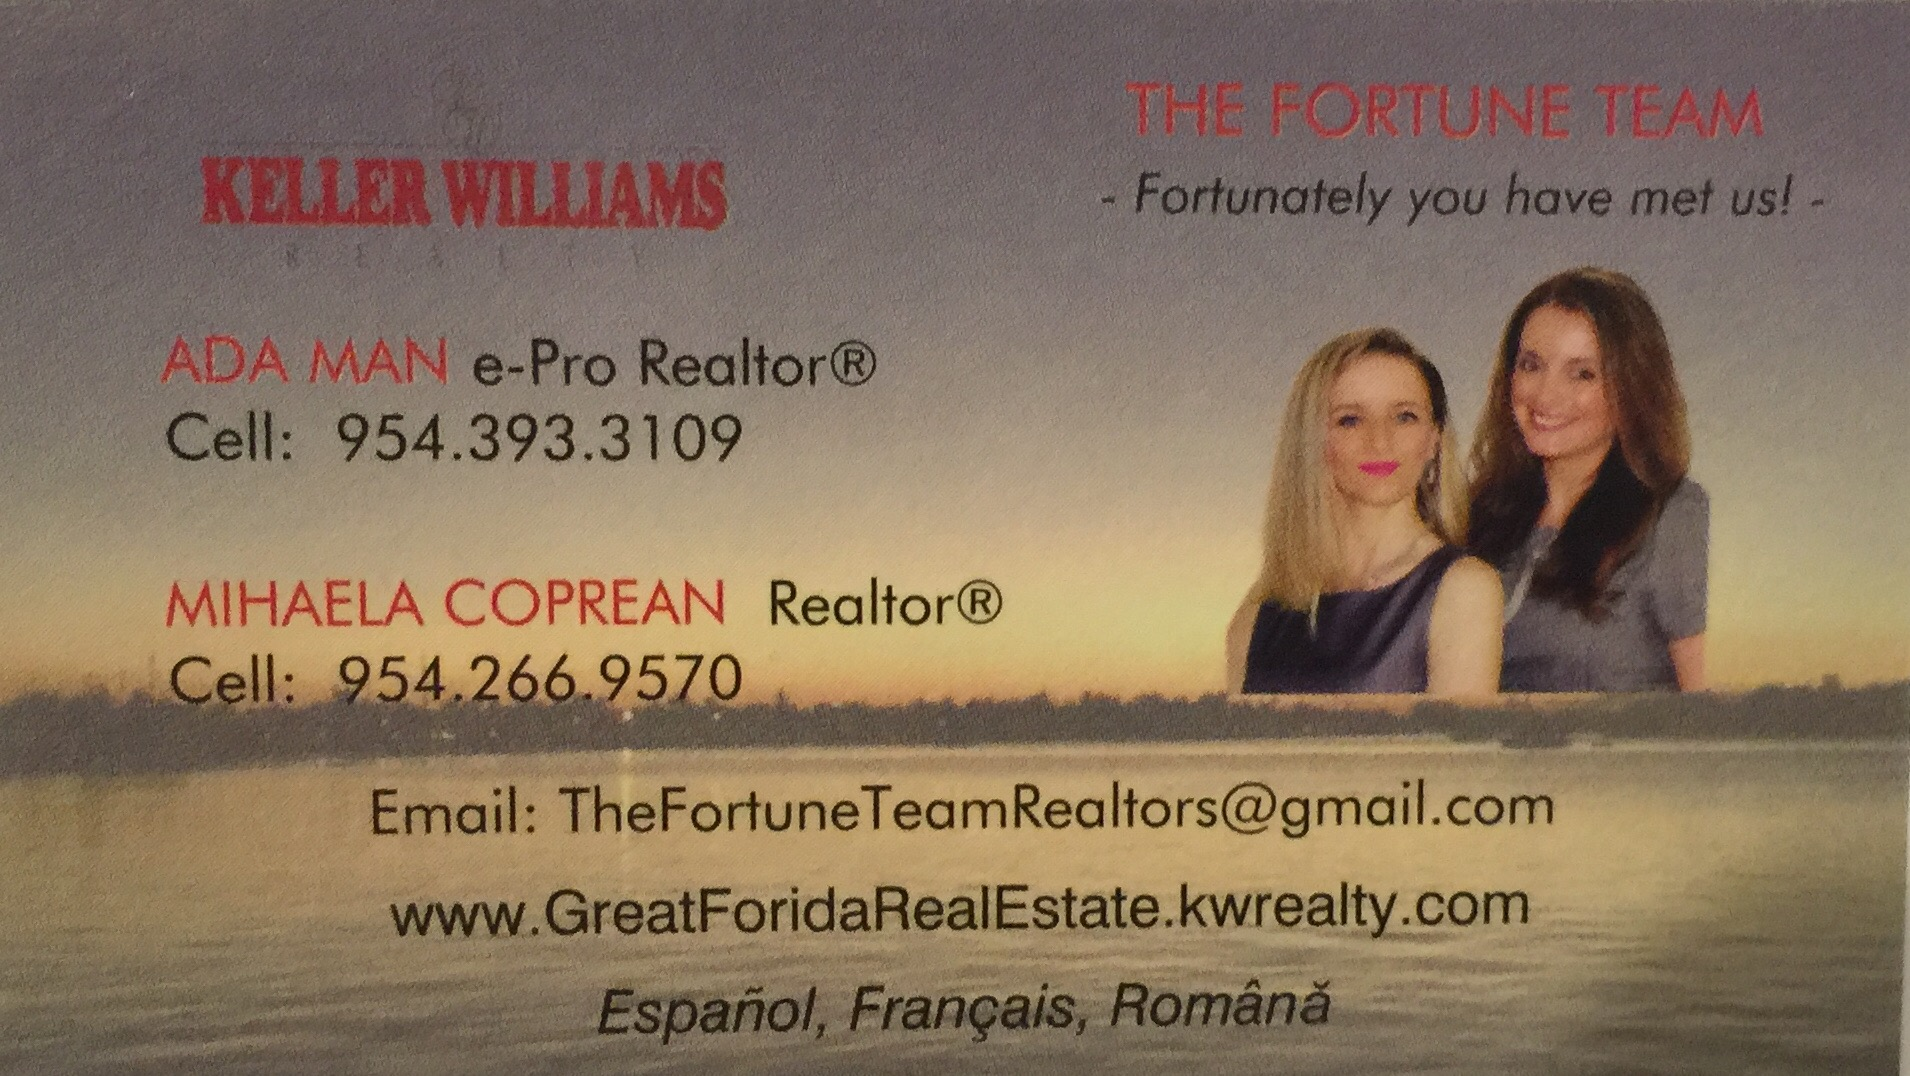 Ada Man & Mihaela Coprean The Fortune Team Realtors